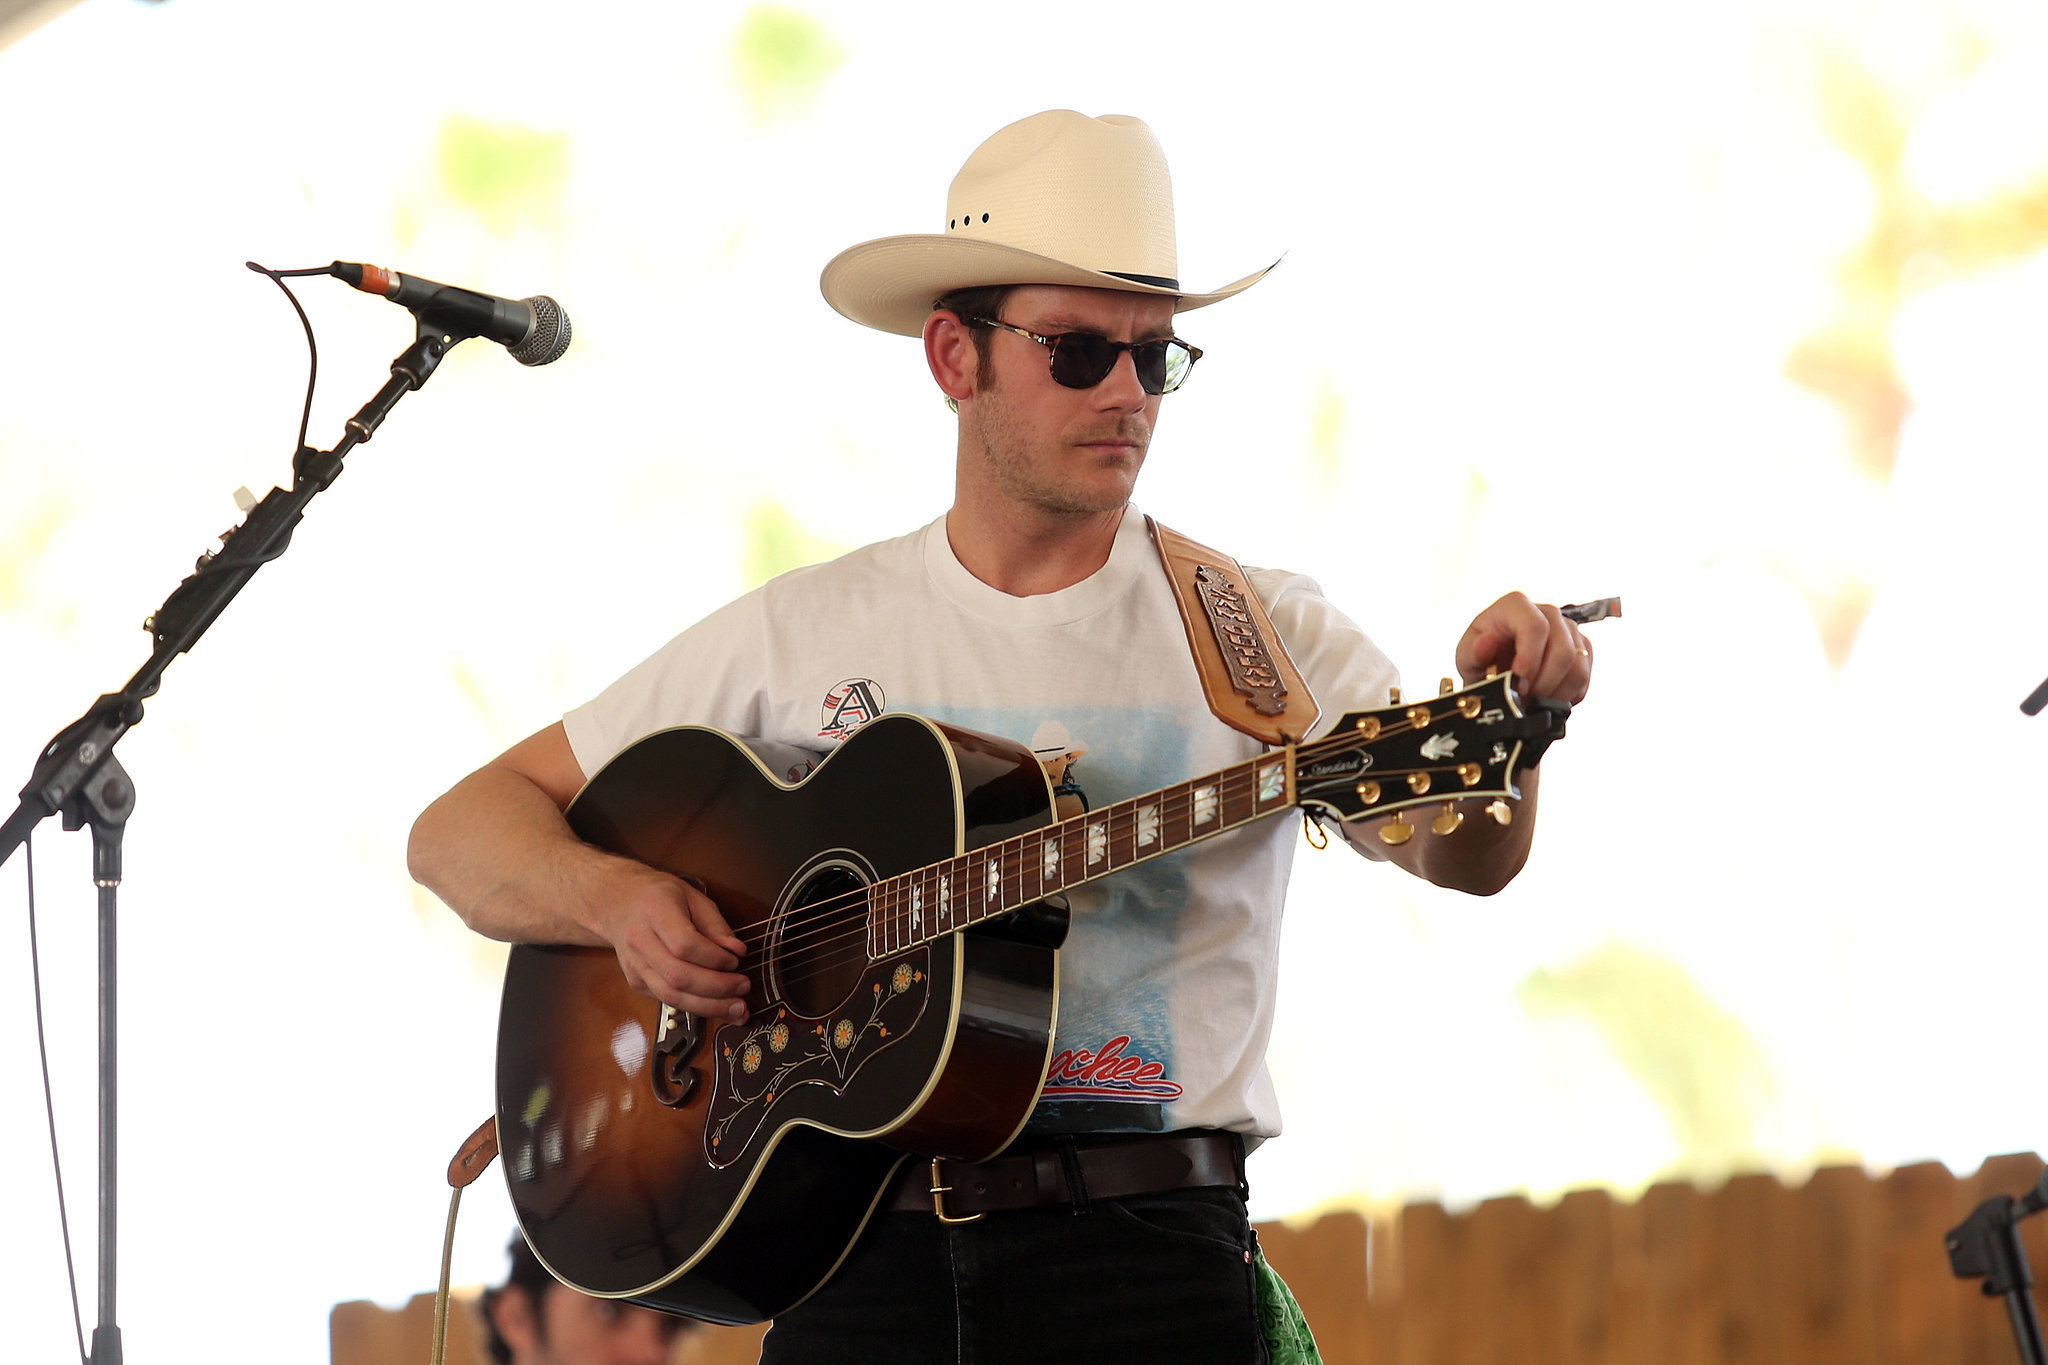 And if you squint your eyes, Sam Outlaw sort of looks like Justin Theroux.